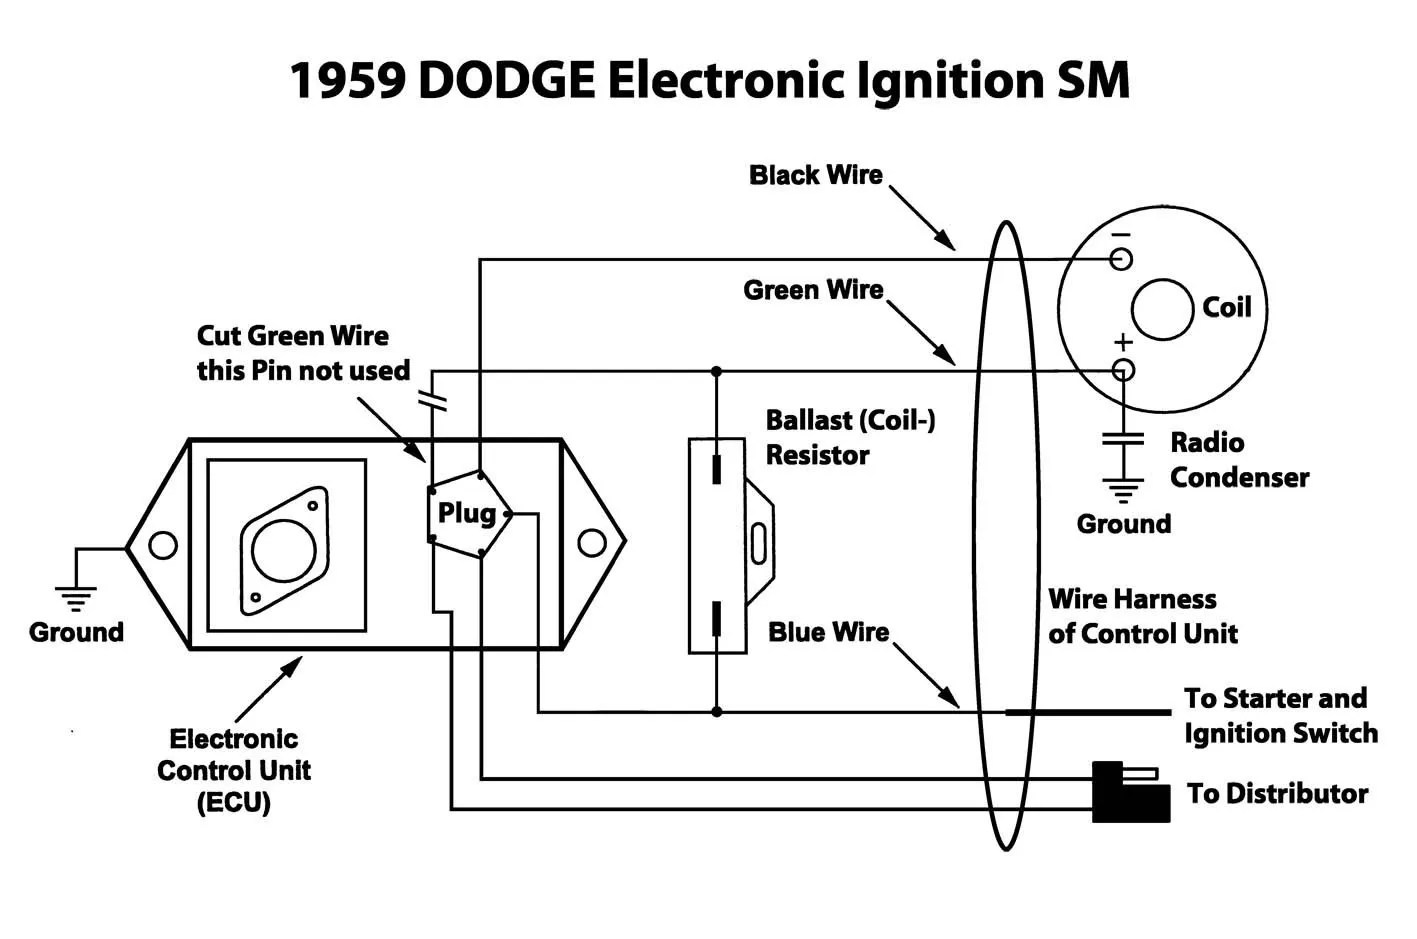 hight resolution of mopar ignition wiring conversion diagram wiring diagrams konsult how to hotwire electronic ignition electrical and ignition mopar